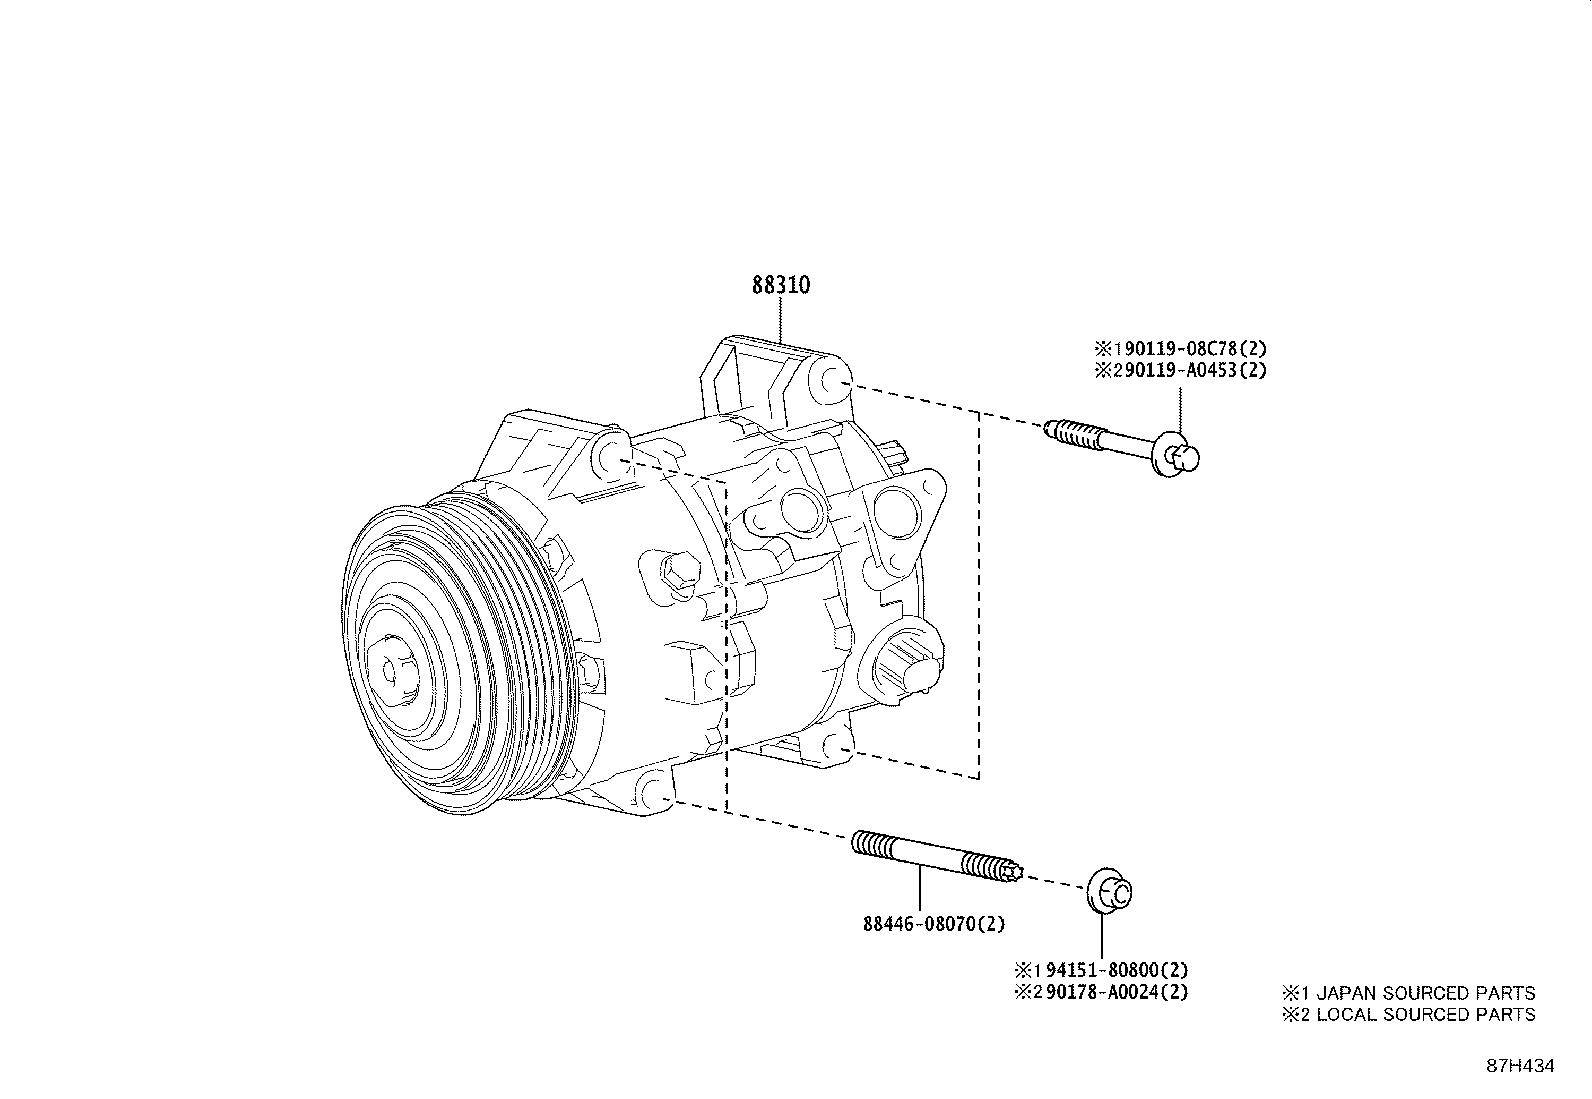 2020 Toyota Compressor assembly, with motor. Repair